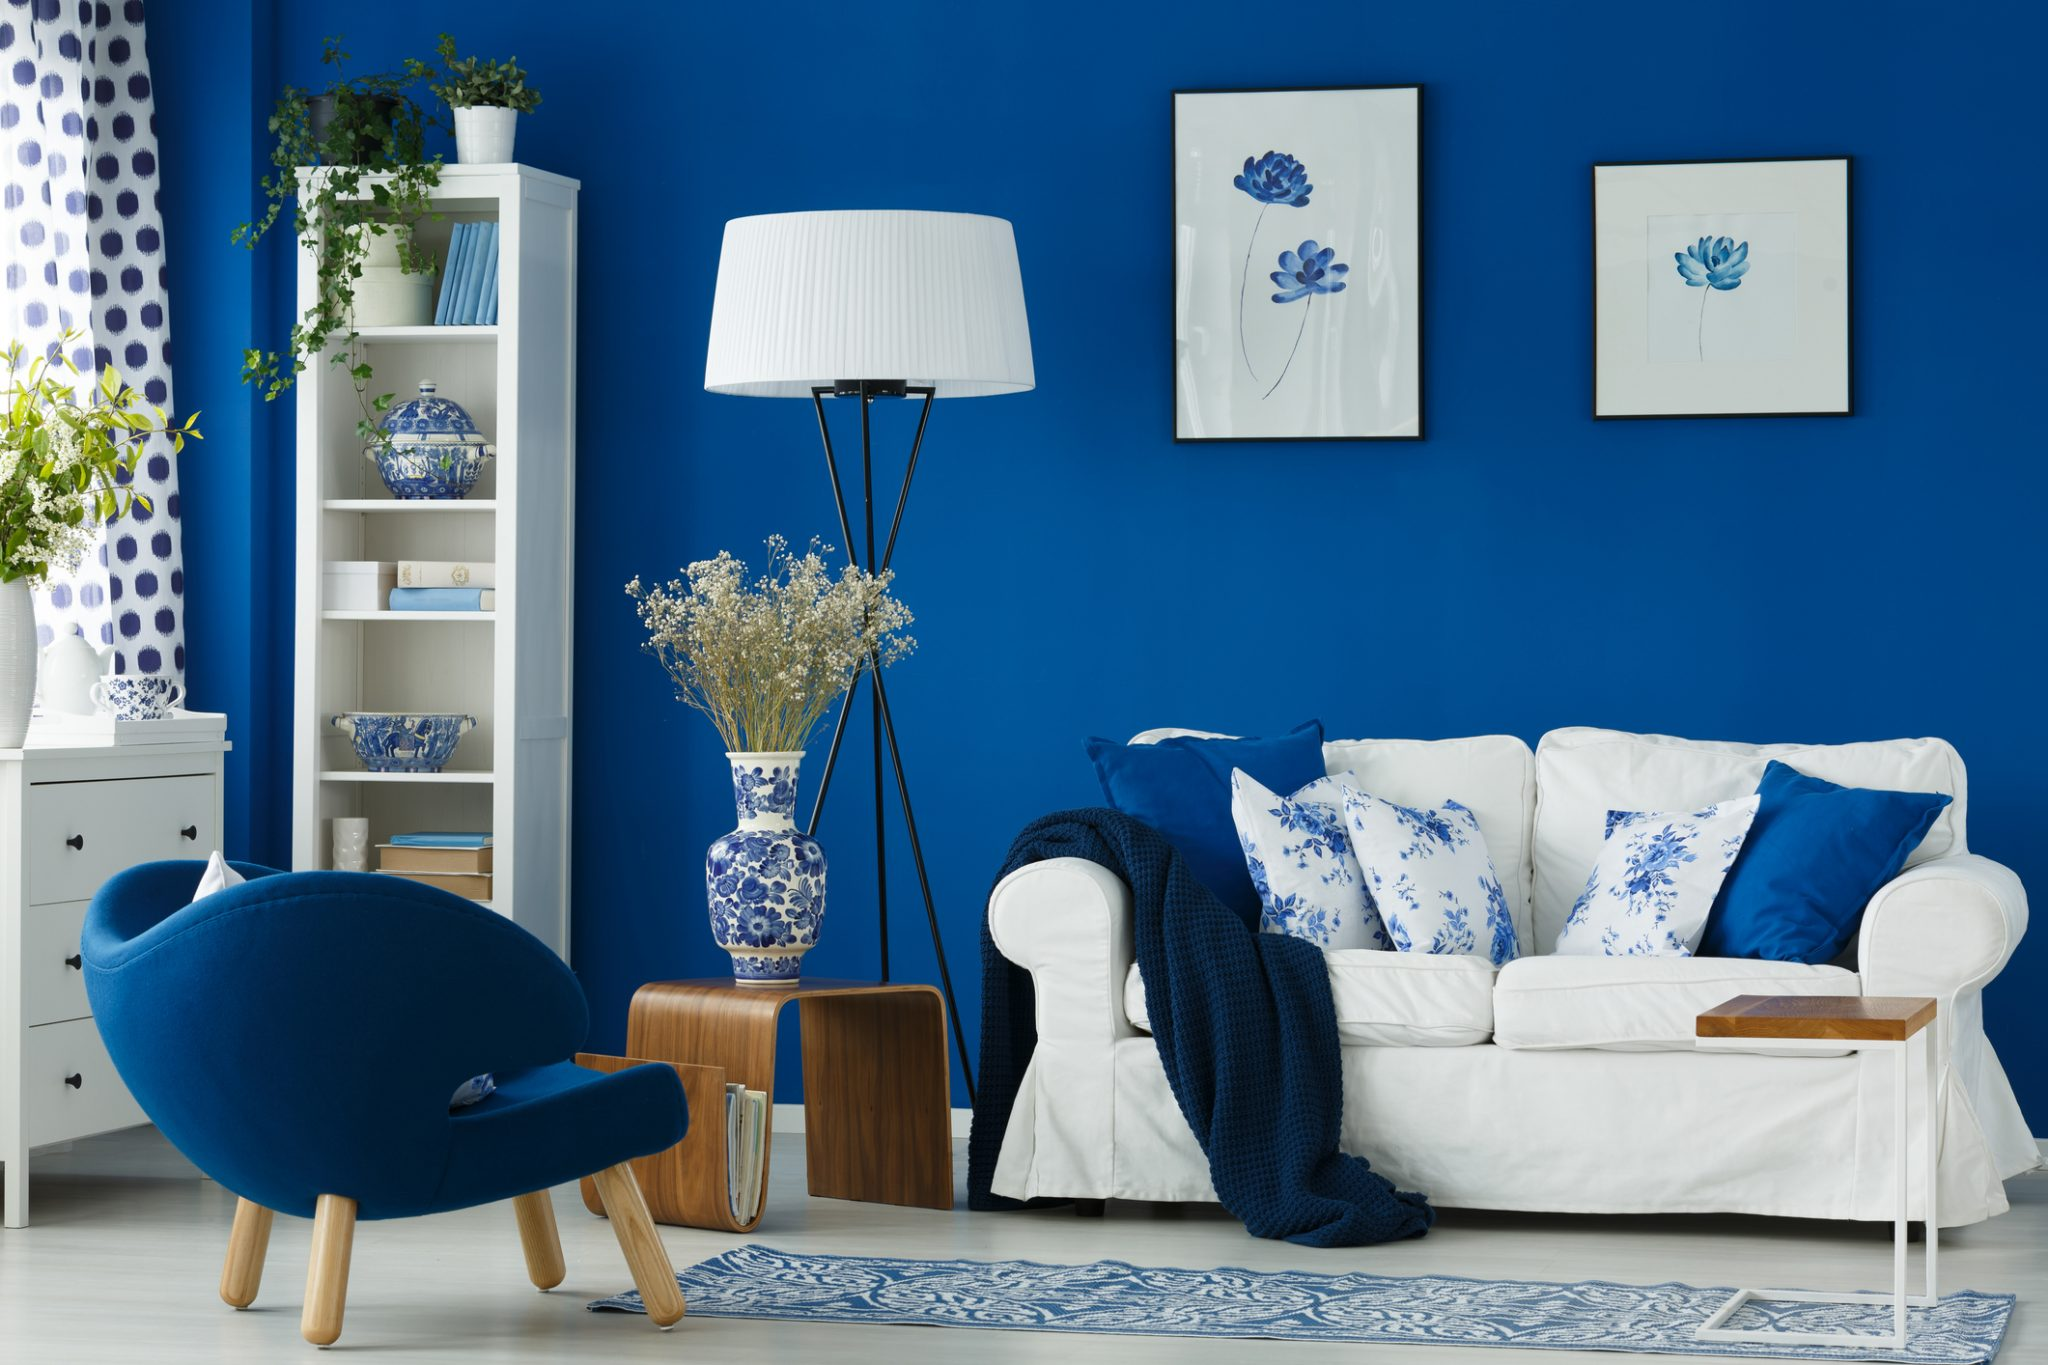 blue color in interior design